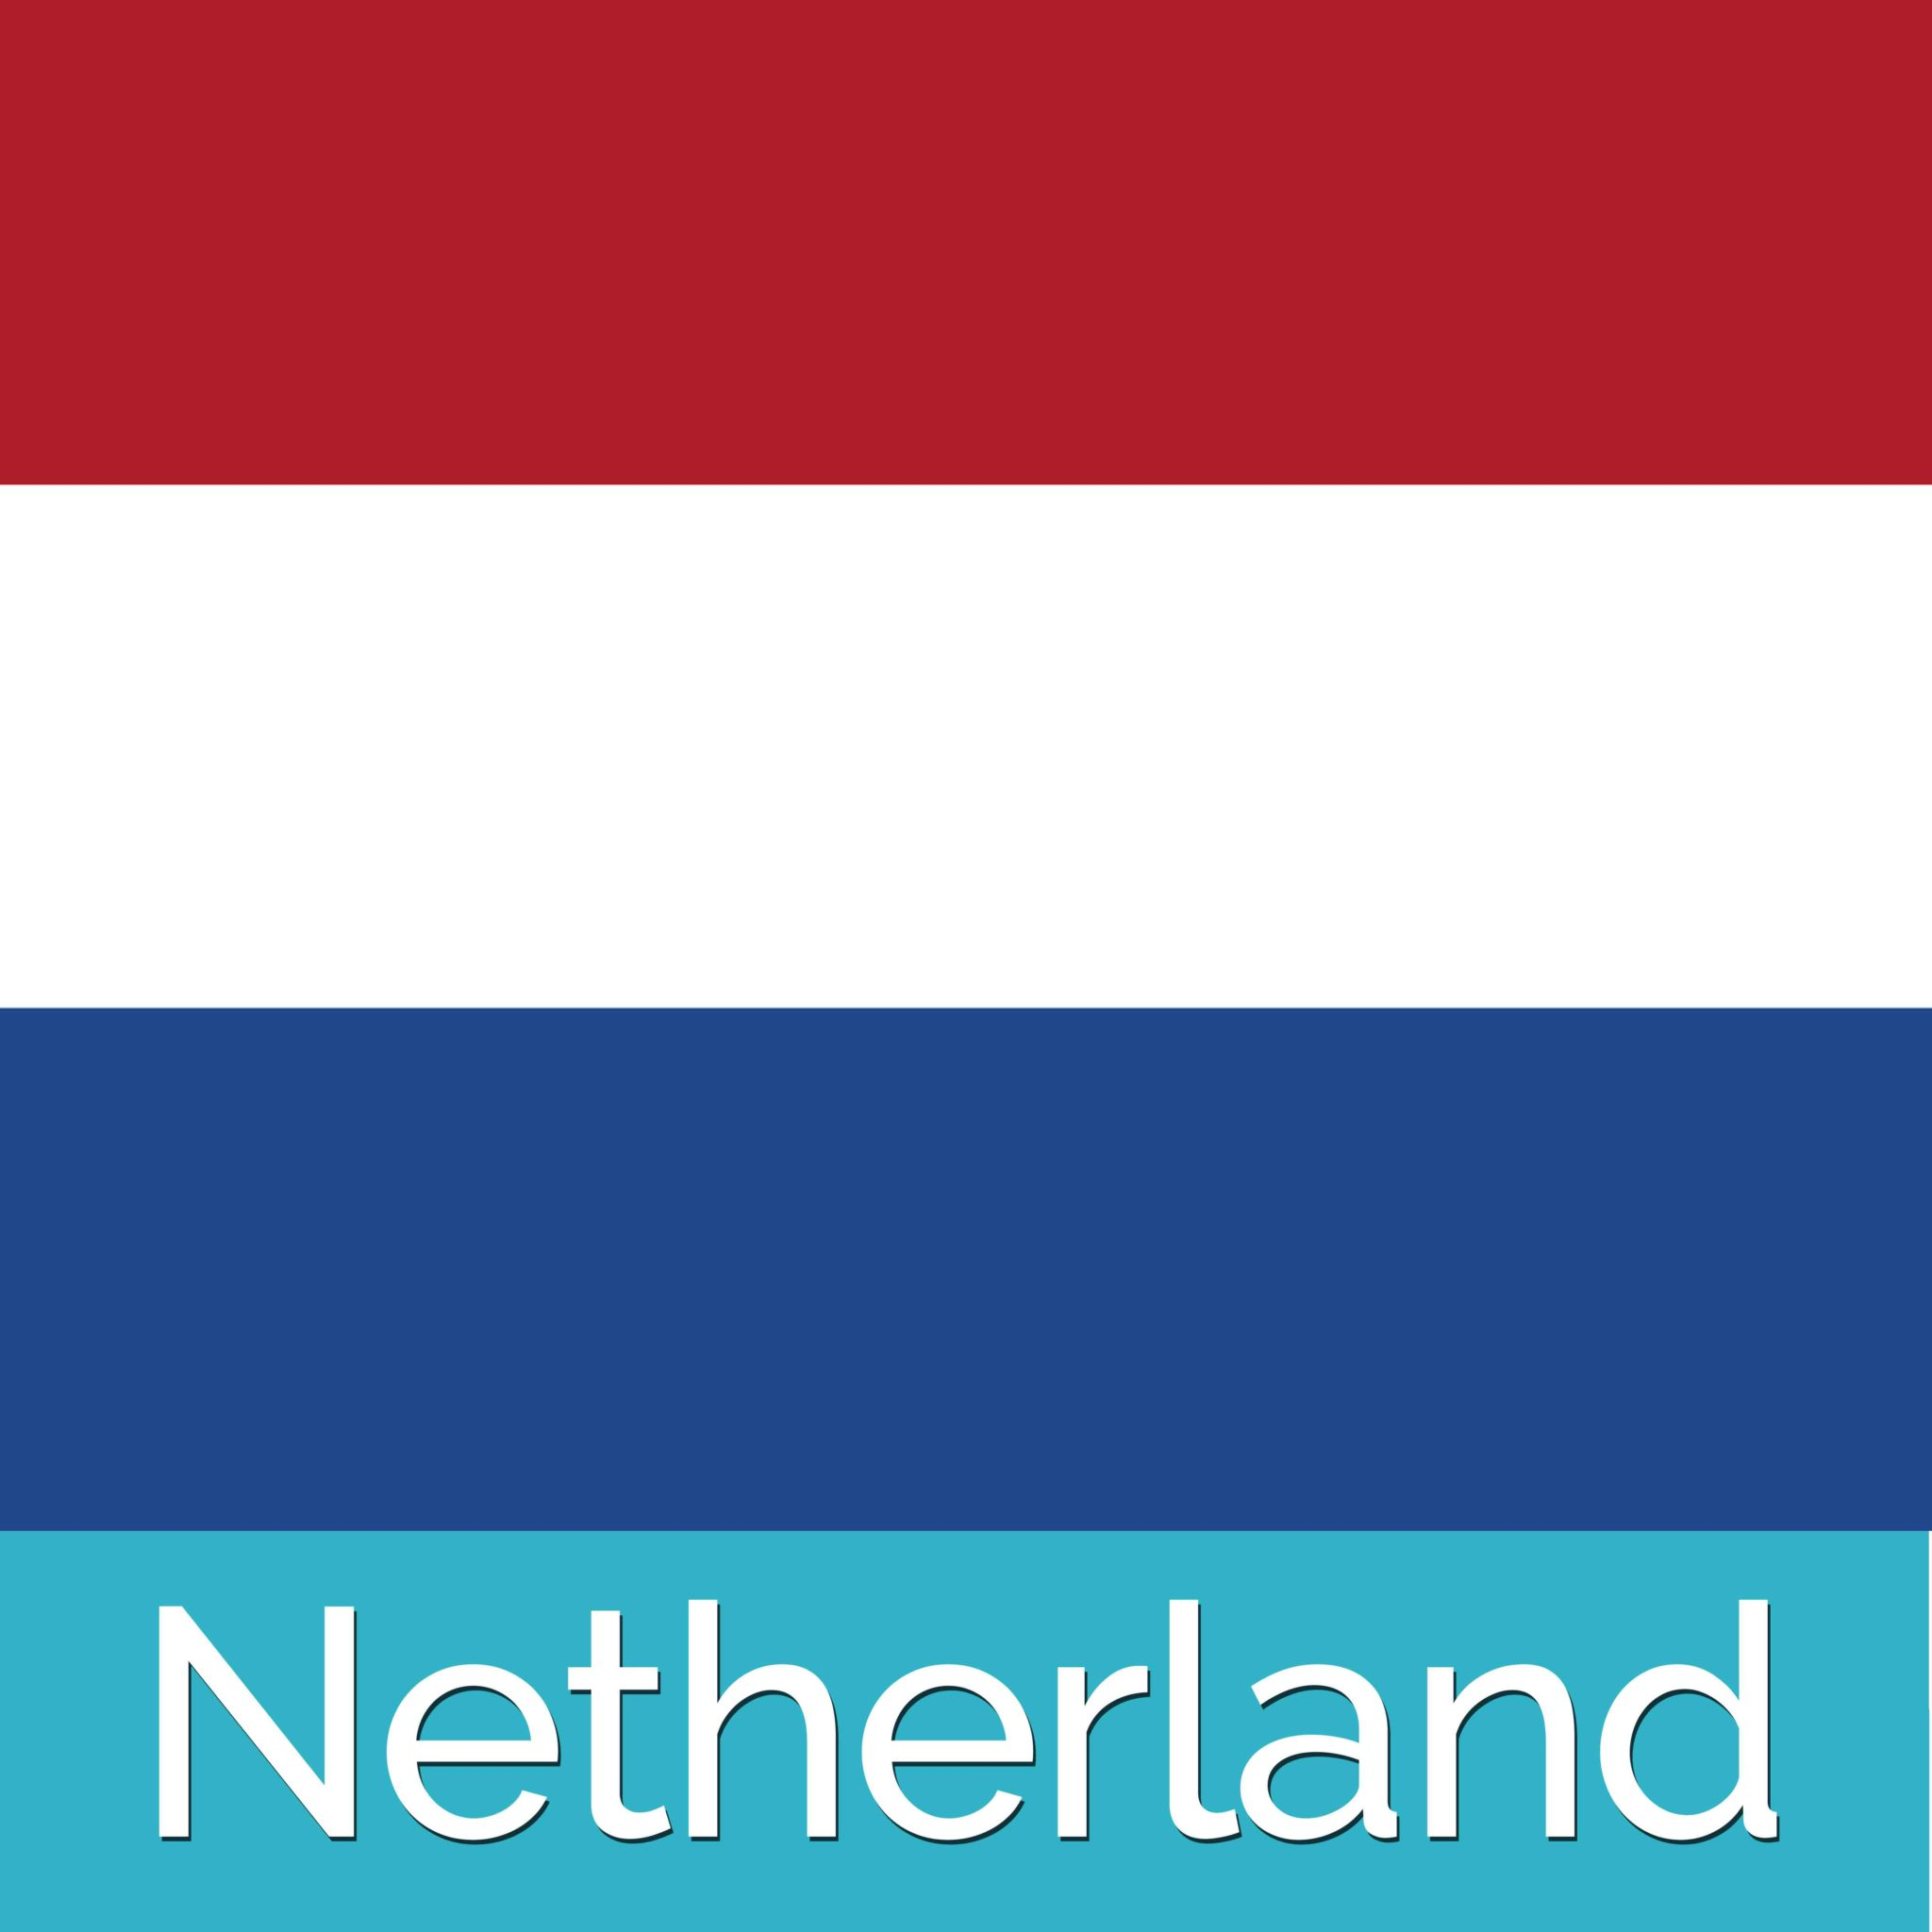 Netherland Travel Guide